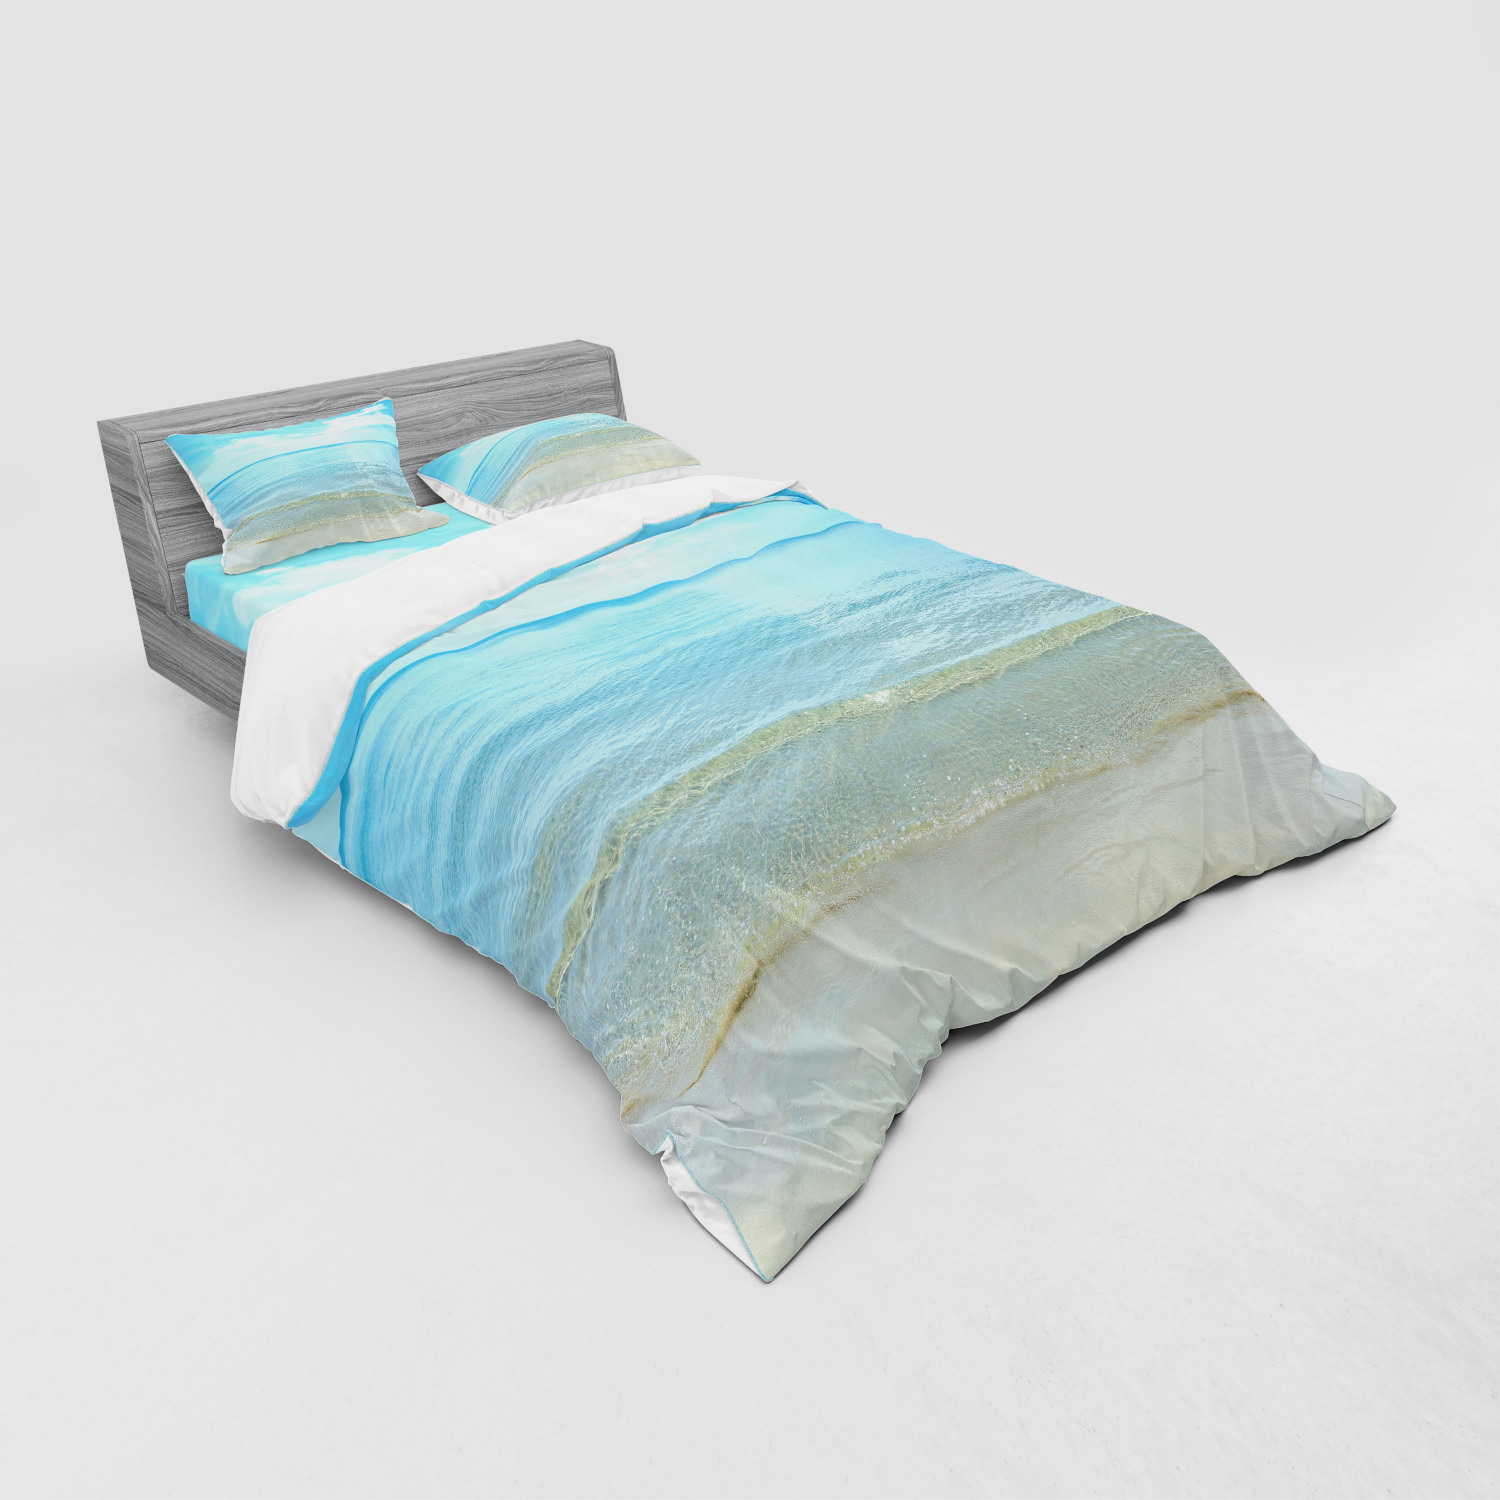 thumbnail 175 - Ambesonne Summer Bedding Set Duvet Cover Sham Fitted Sheet in 3 Sizes